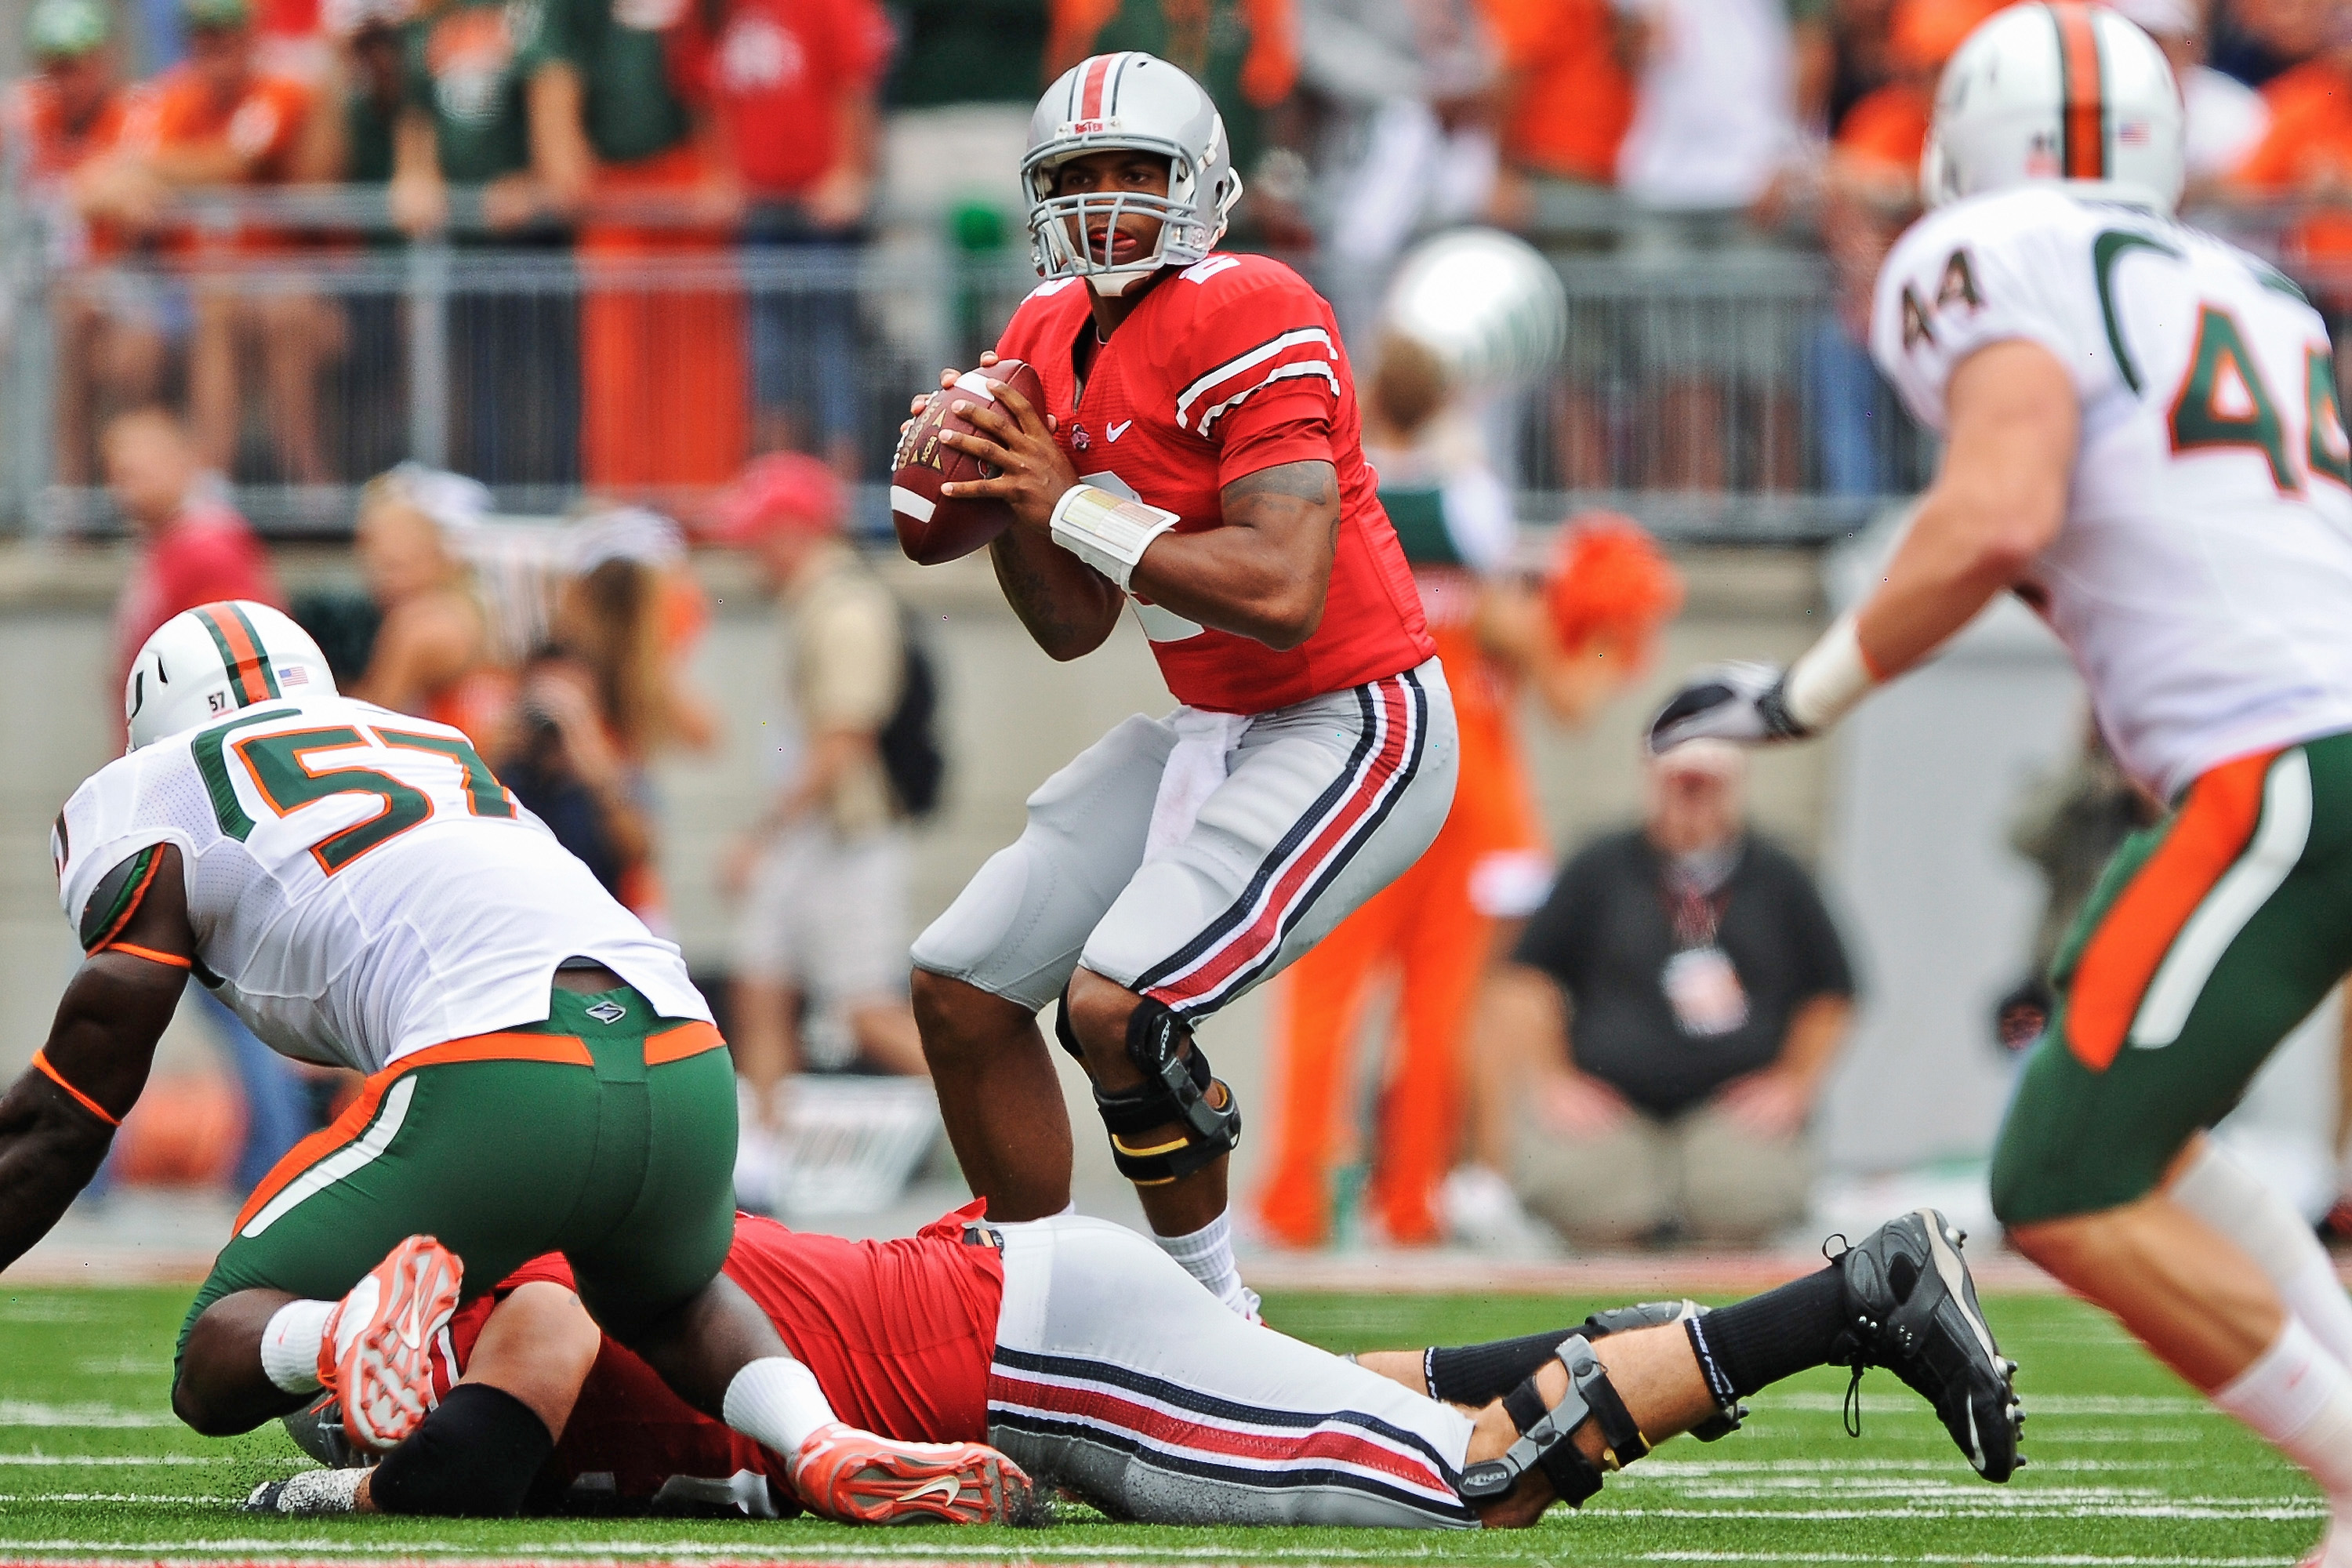 COLUMBUS, OH - SEPTEMBER 11:  Quarterback Terrelle Pryor #2 of the Ohio State Buckeyes passes the ball against the Miami Hurricanes at Ohio Stadium on September 11, 2010 in Columbus, Ohio.  (Photo by Jamie Sabau/Getty Images)